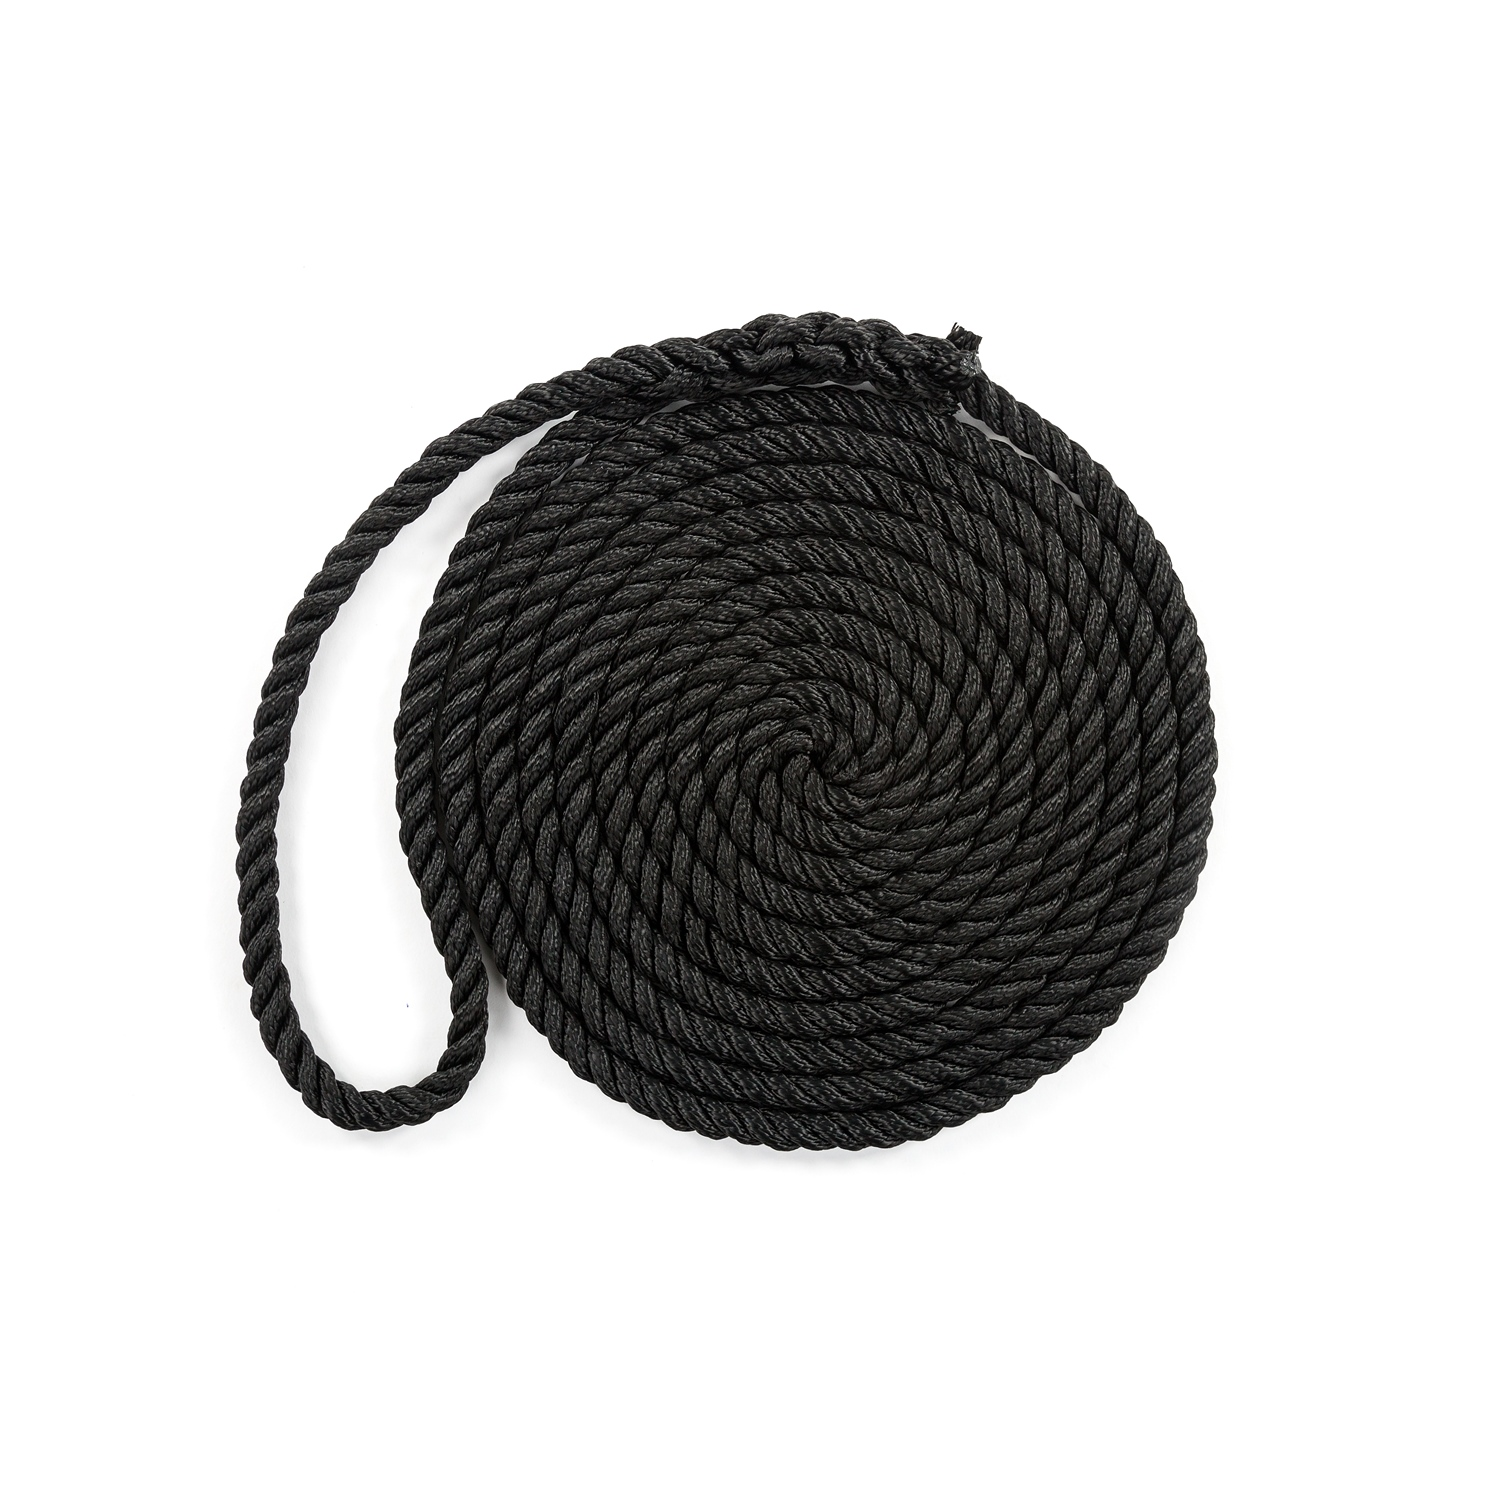 "ANCHOR ROPE DOCK LINE 5//8/"" X 50/' DOUBLE BRAIDED 100/% NYLON BLACK MADE IN USA"